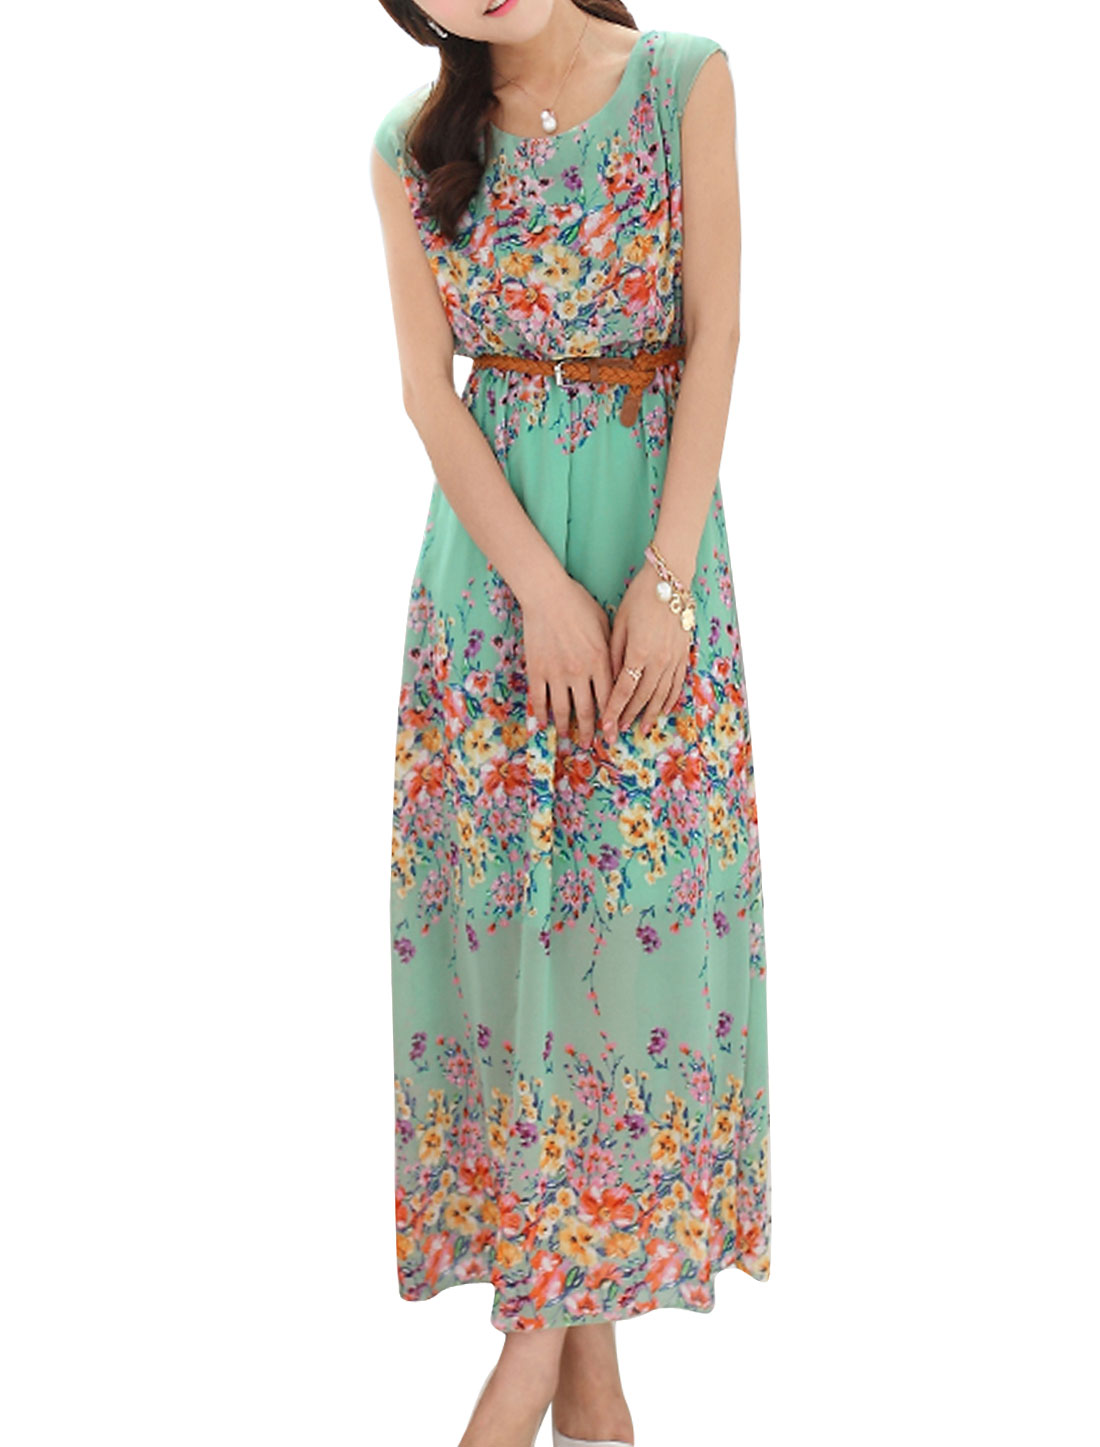 Women Sleeveless Elastic Waist w Belt Flower Pattern Dress Green XS